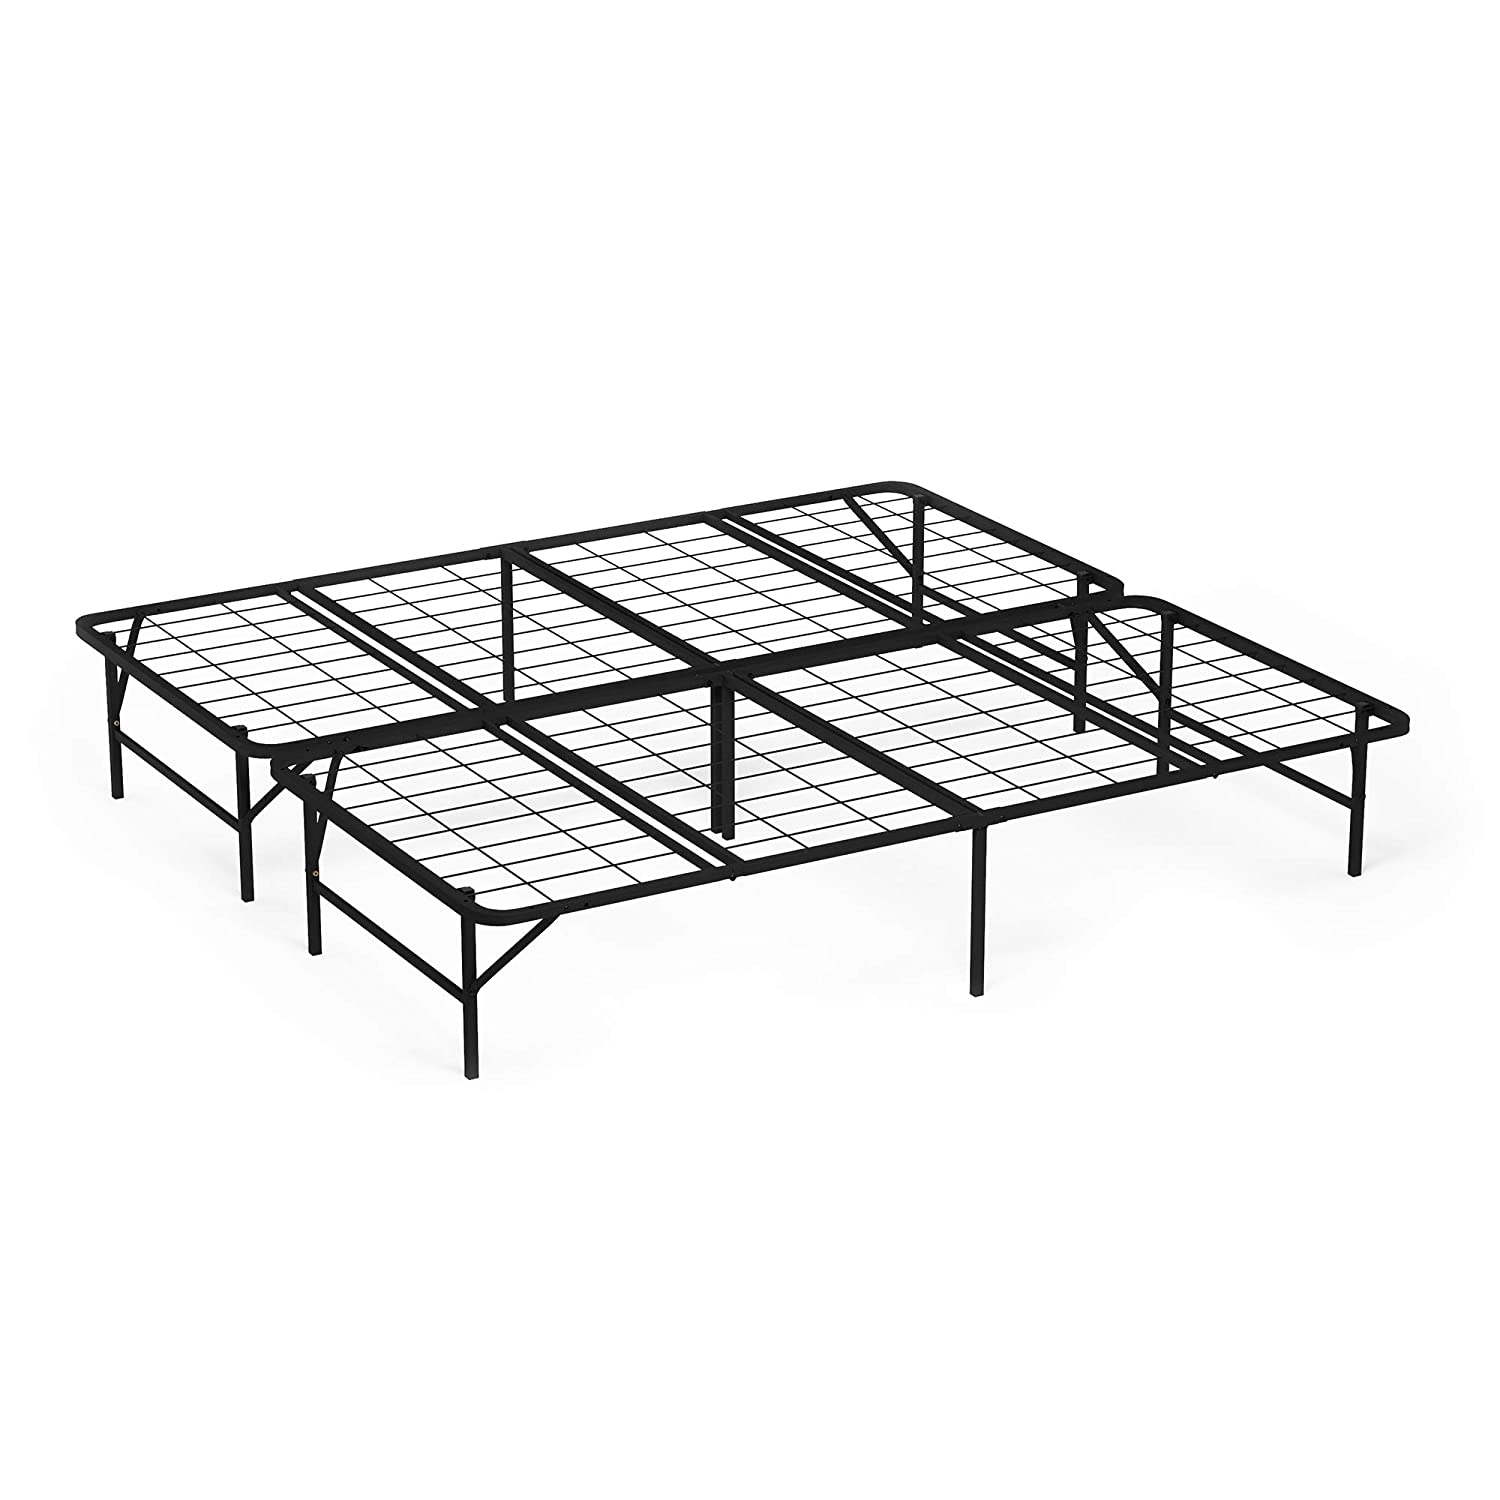 Furinno FB009K Angeland Matress Foundation Platform Metal Bed Frame, King, Black